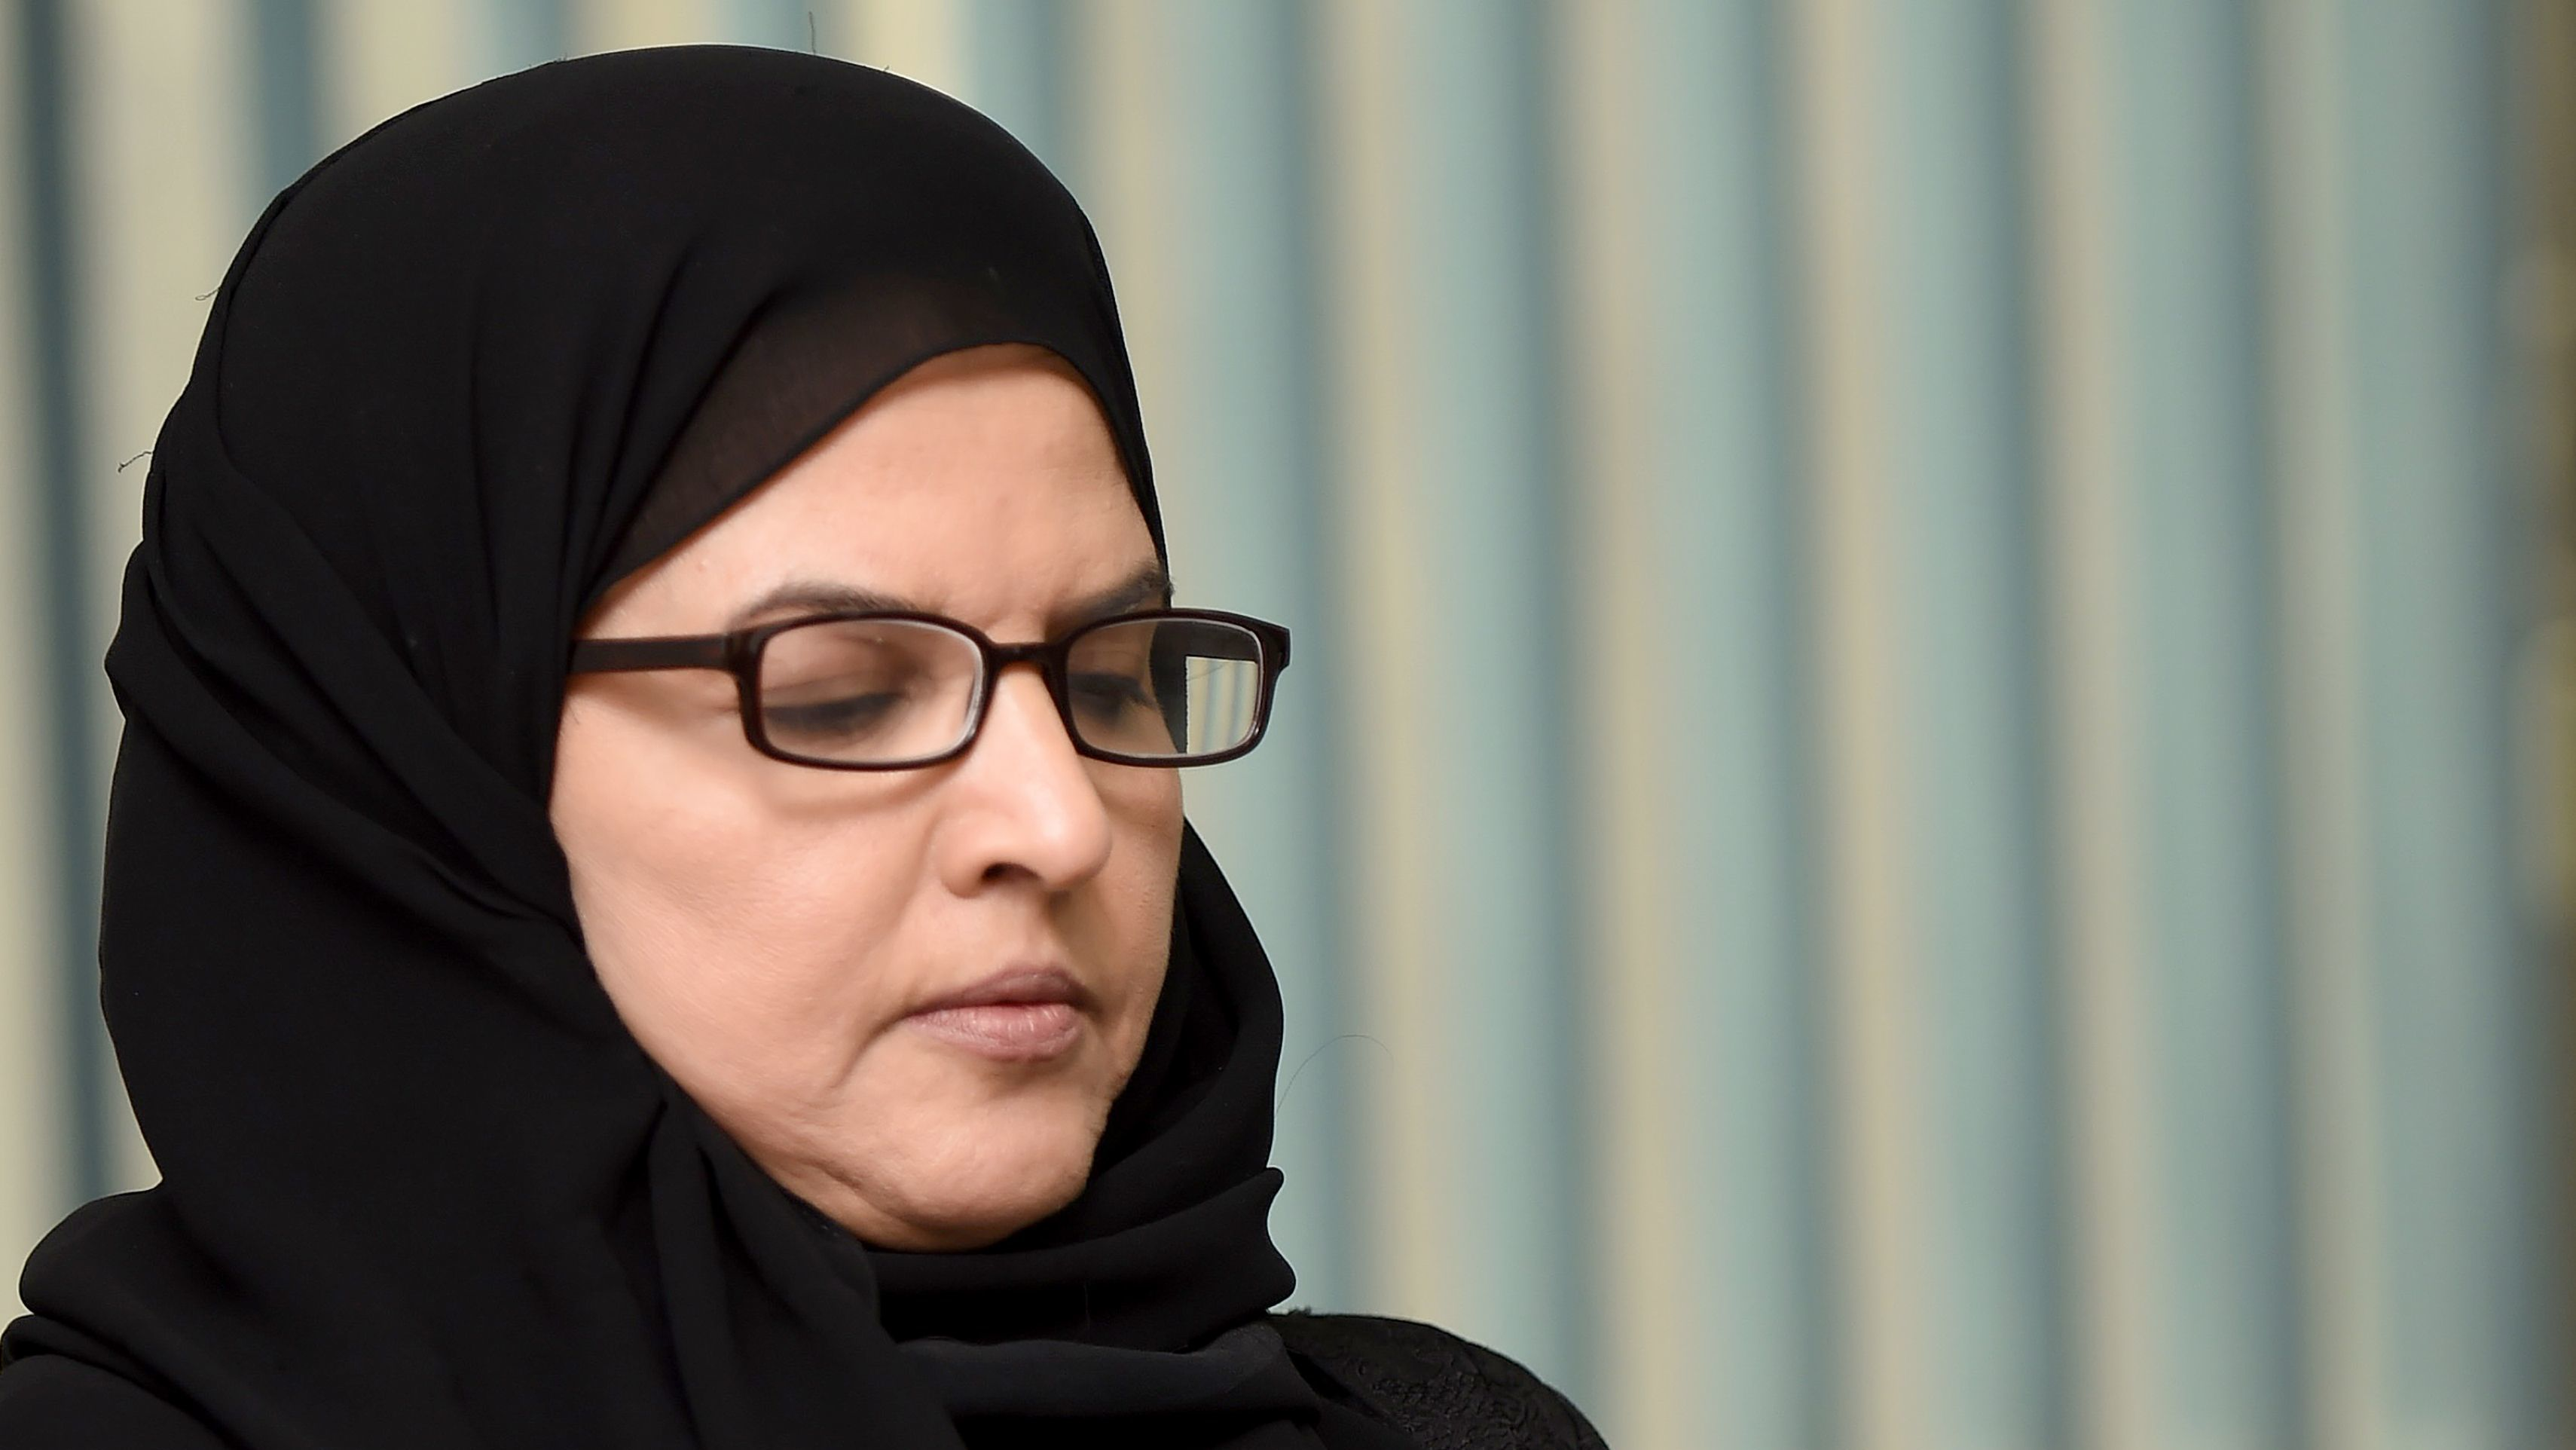 Saudi activist and campaigner Aziza al-Yousef, pictured in 2016, is on trial this week in the capital, Riyadh. She has been detained since last May.